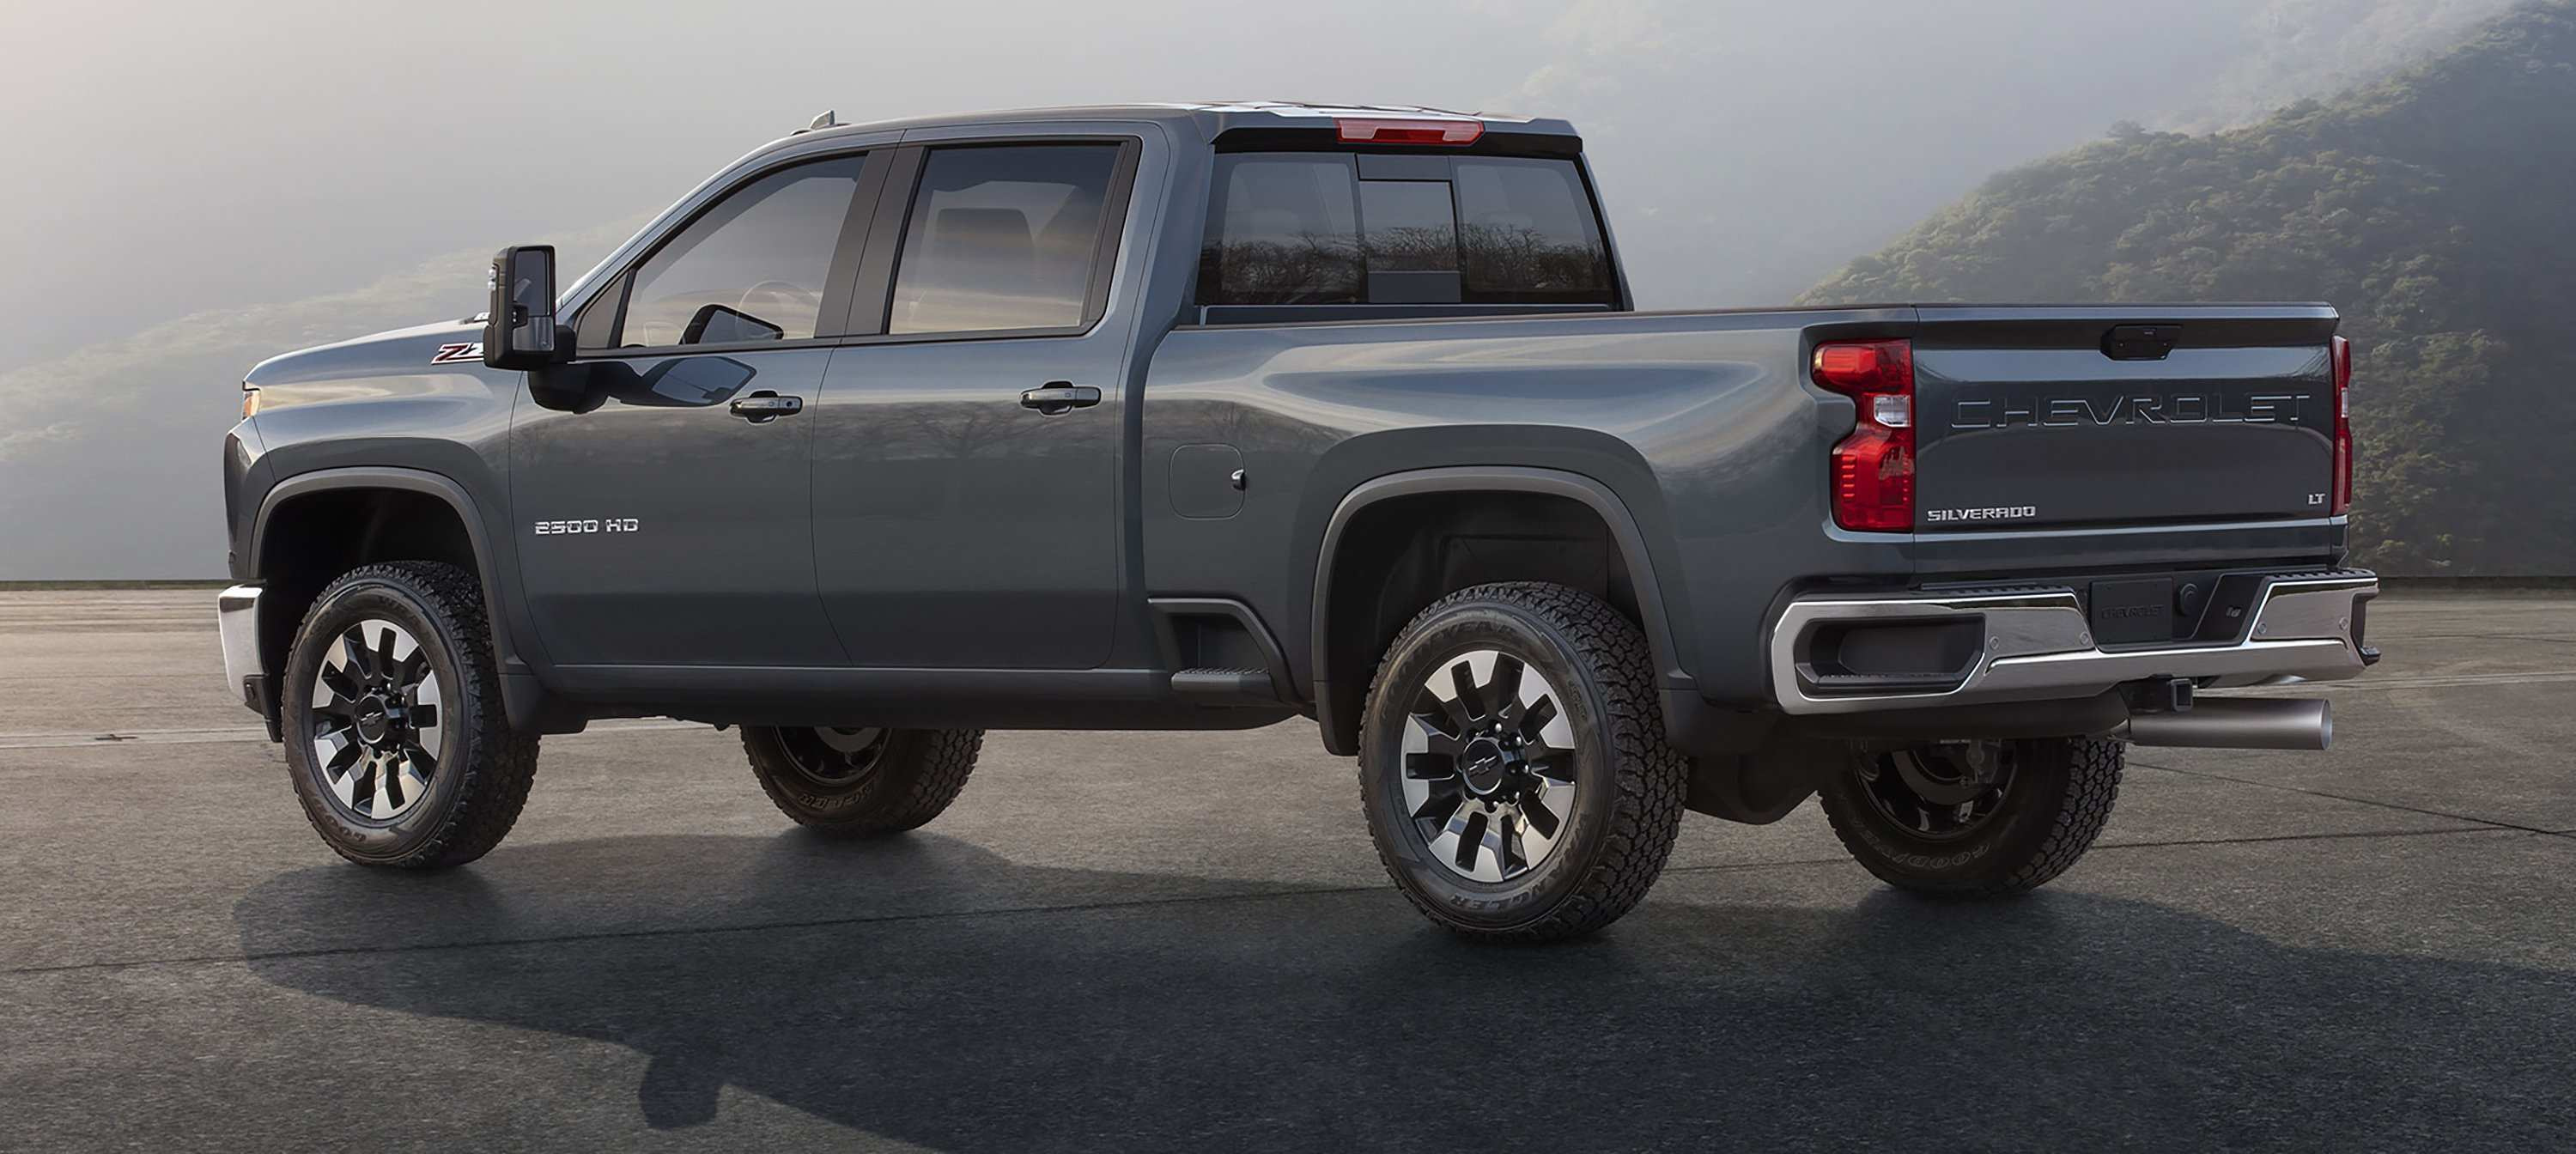 37 New 2020 Chevrolet Lineup Ratings for 2020 Chevrolet Lineup